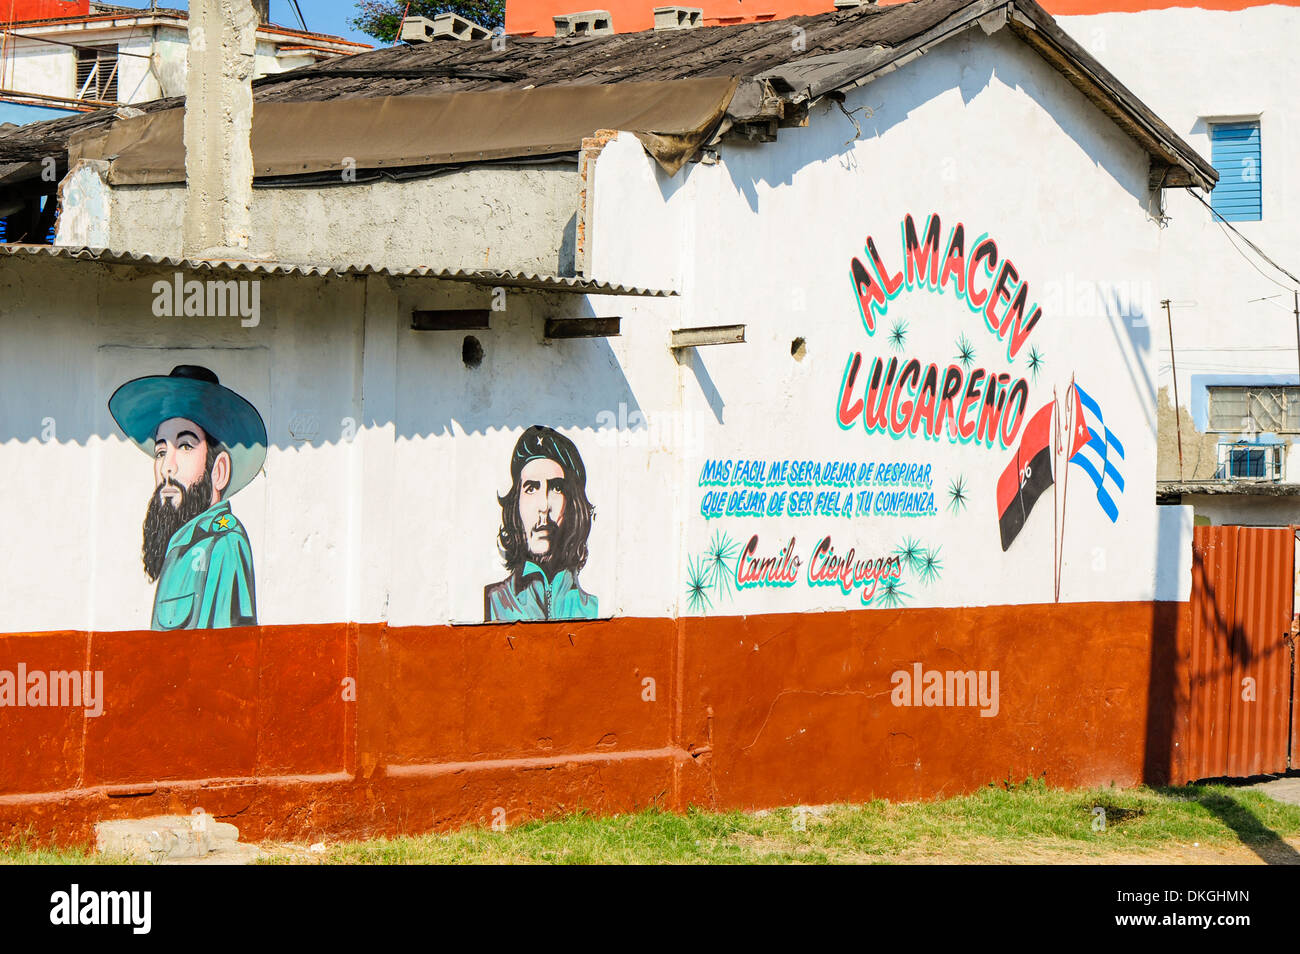 Images of Che Guevara and Fidel Castro at a hut, Havana, Cuba - Stock Image